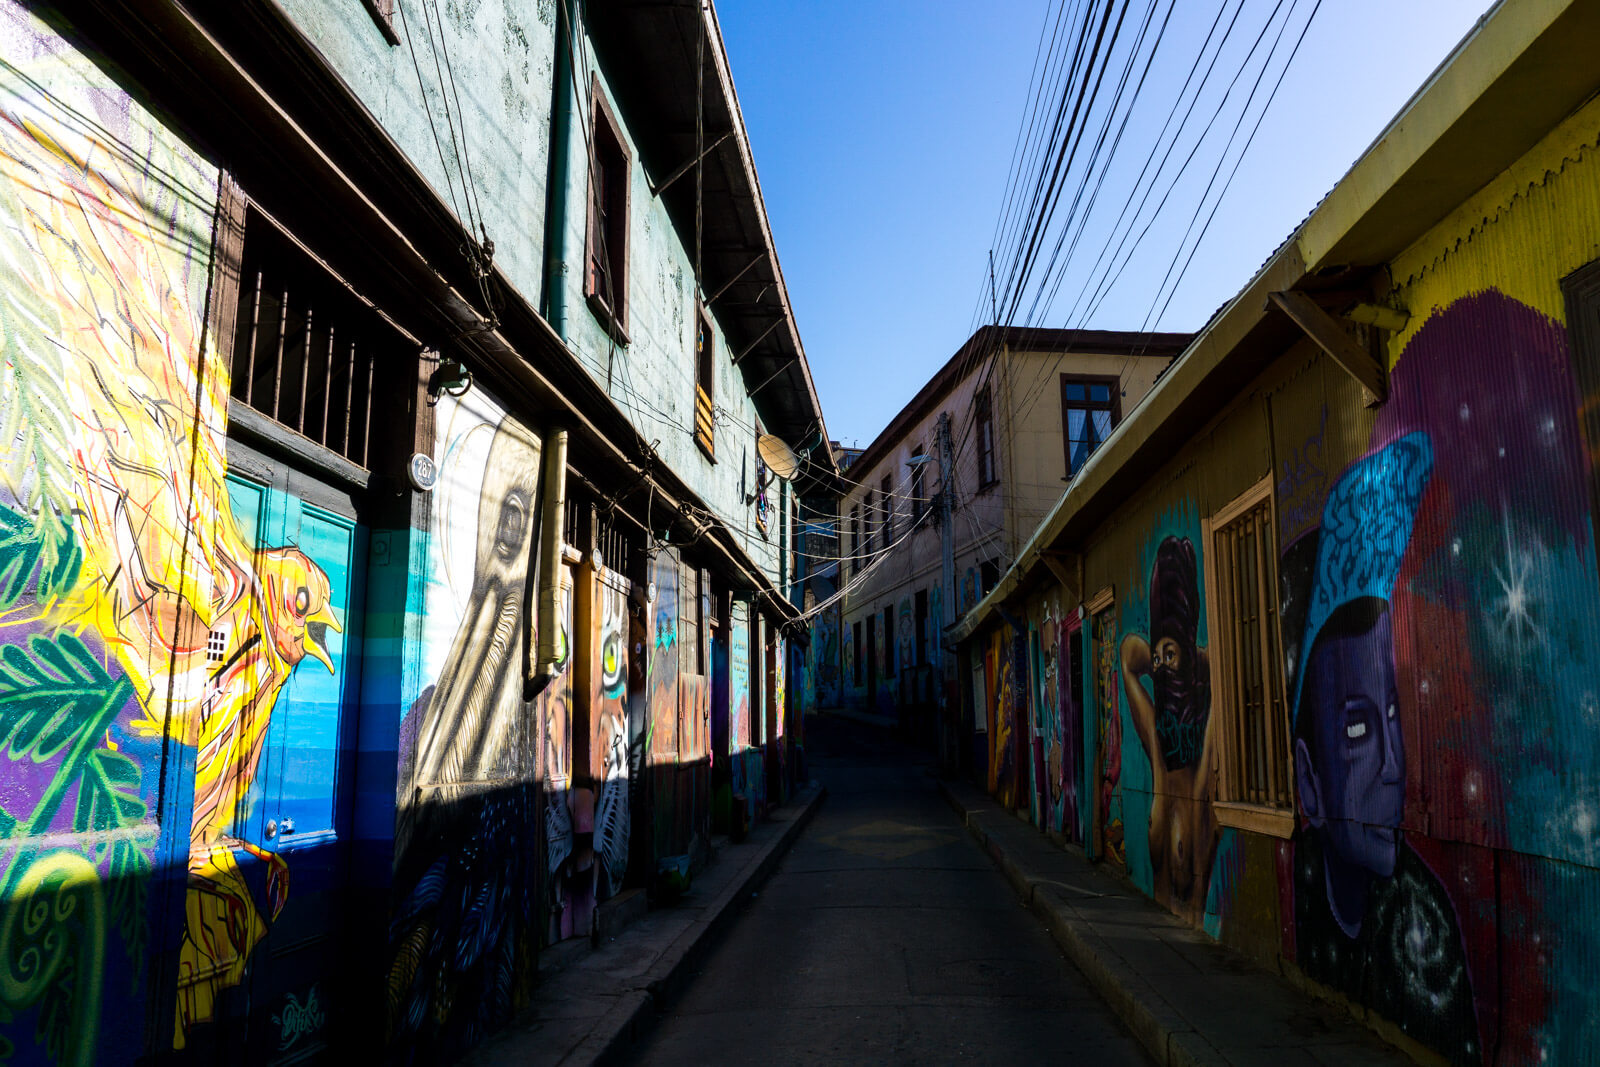 The Best Things to Do and See in Valparaiso